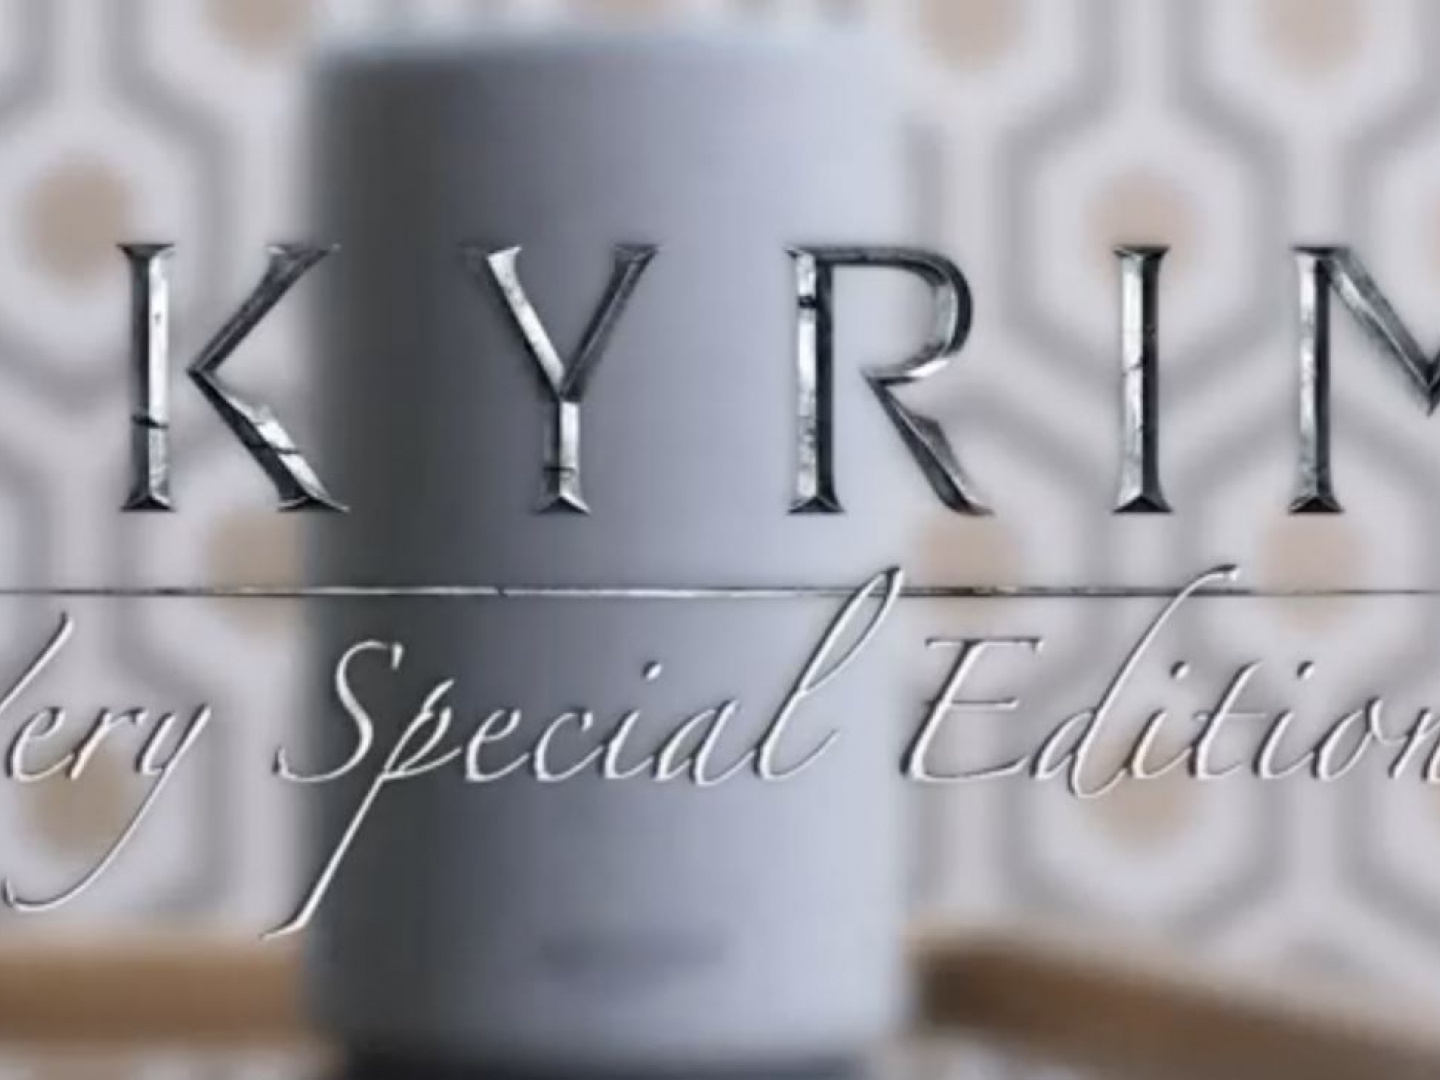 Skyrim: Very Special Edition: Official Trailer Thumbnail